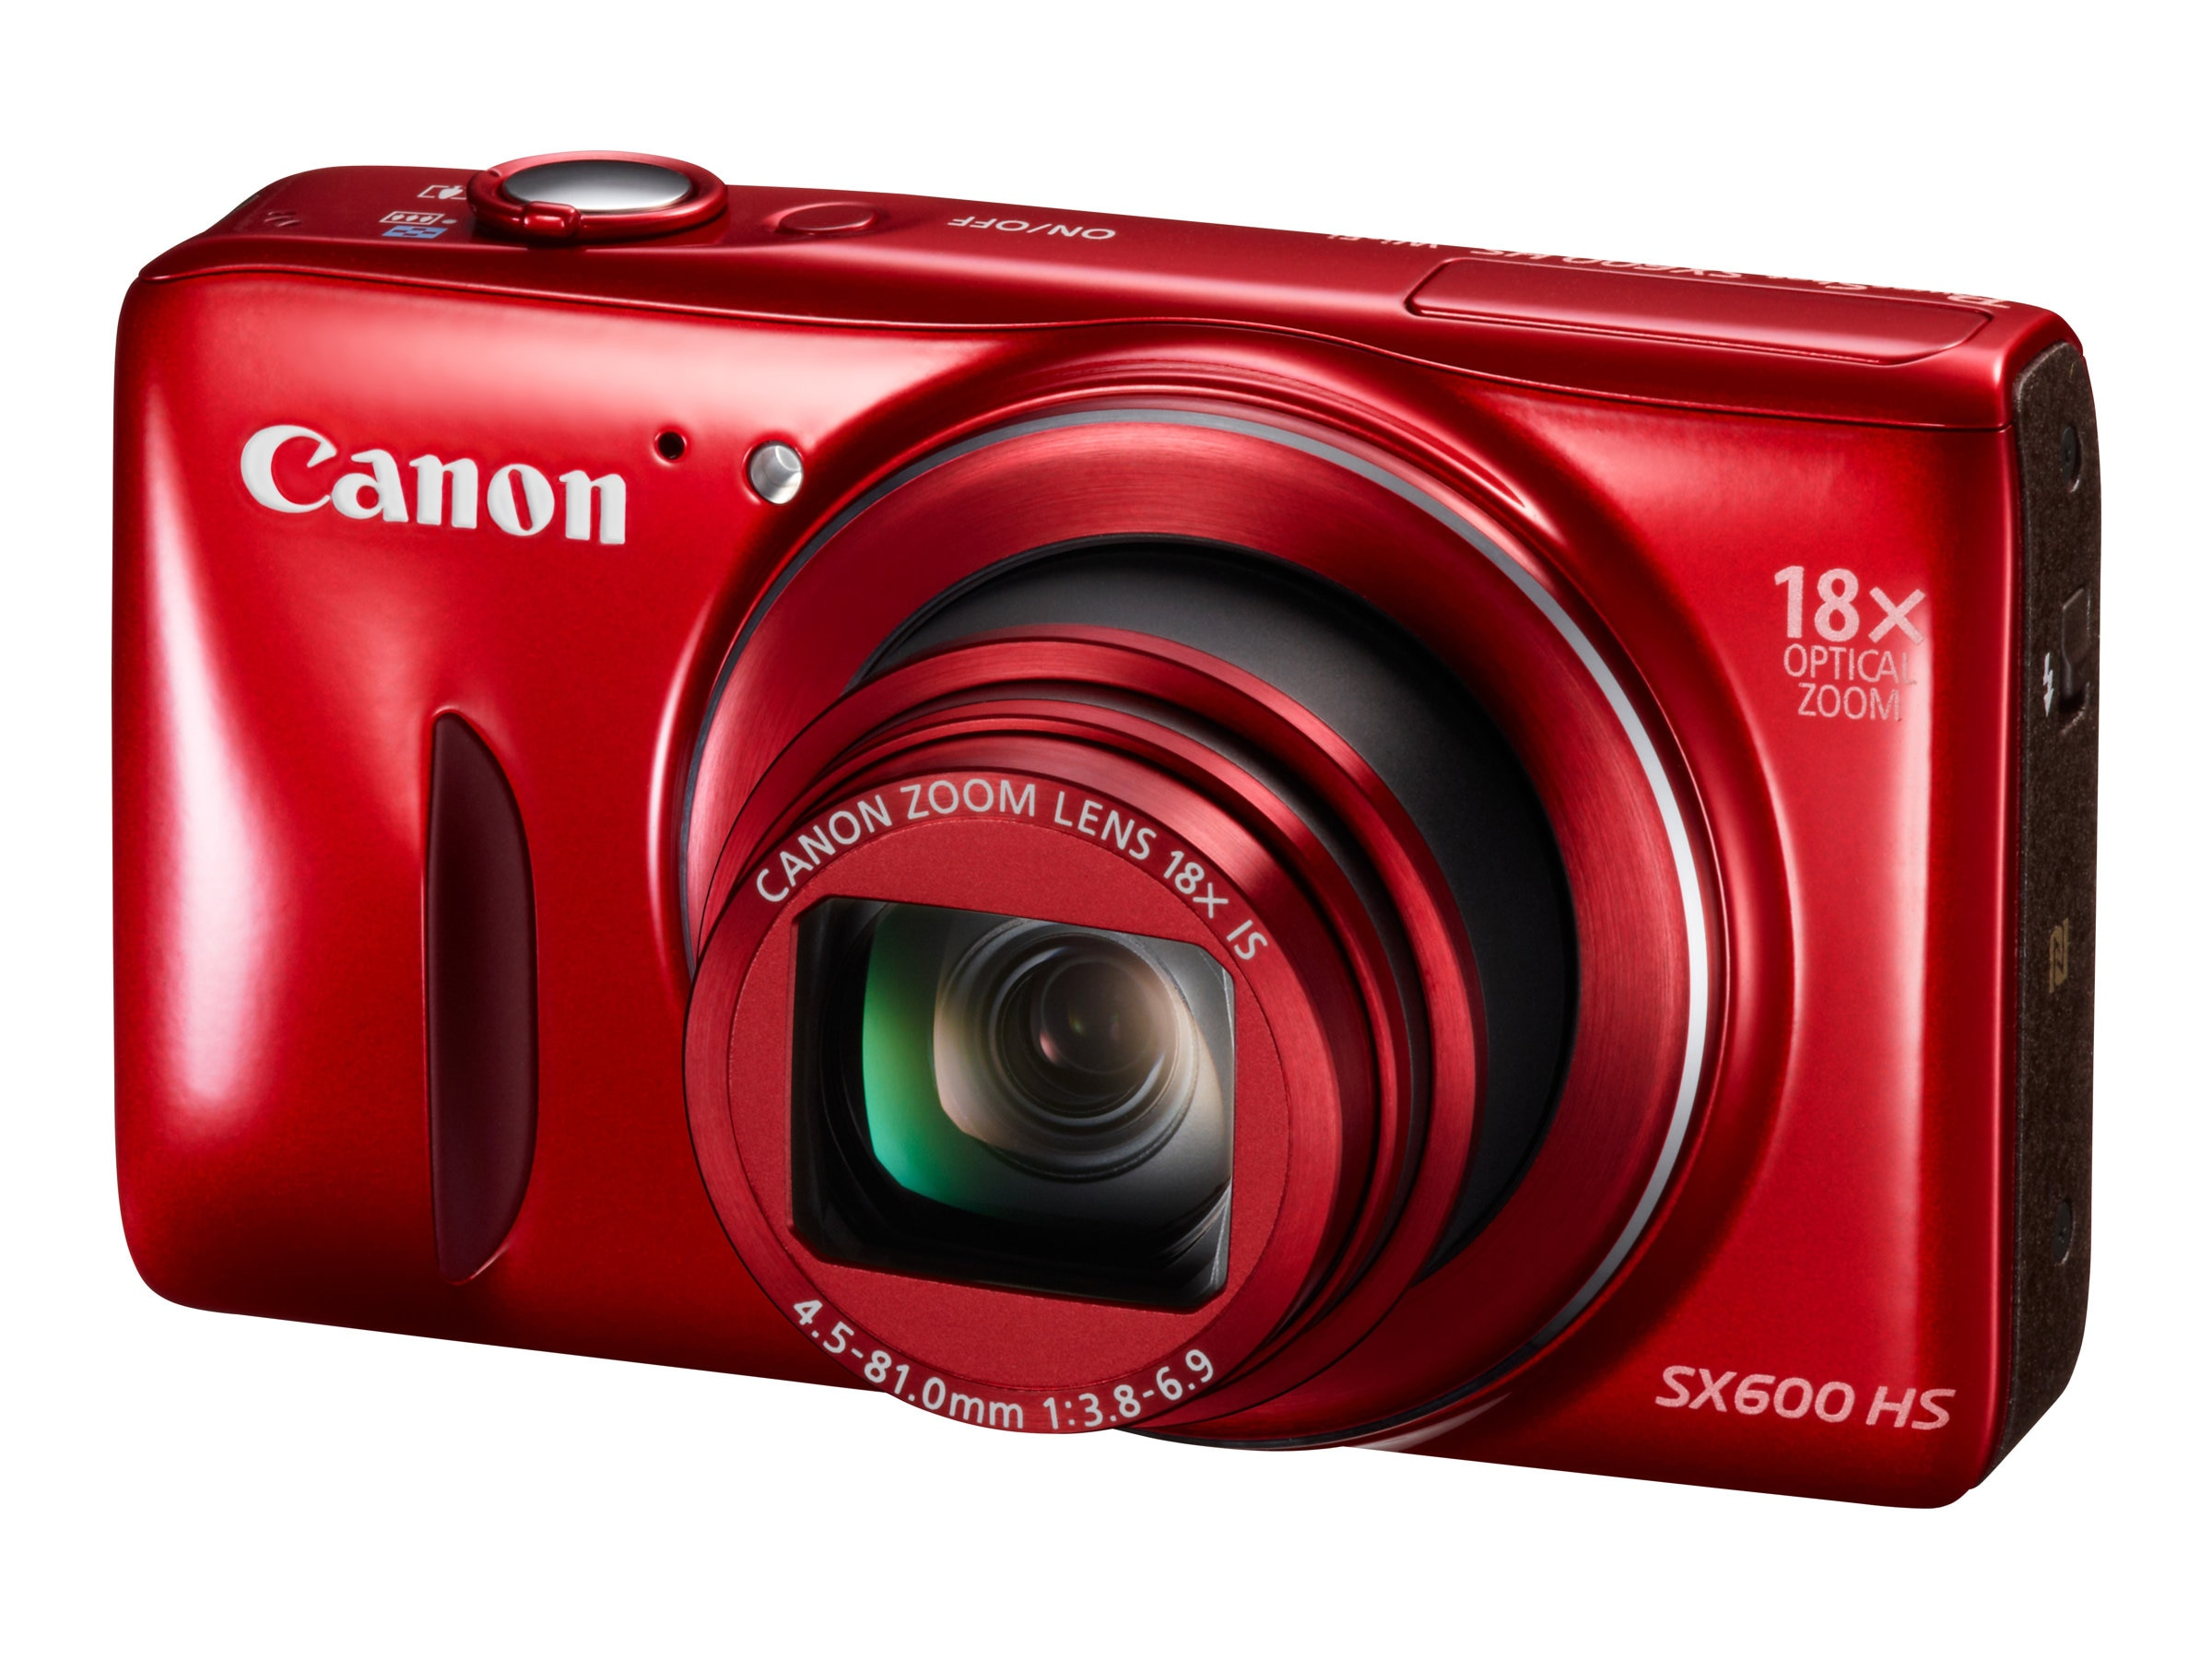 Canon PowerShot SX600 HS, 16MP, 18x Zoom, Red, 9342B001, 16958686, Cameras - Digital - Point & Shoot